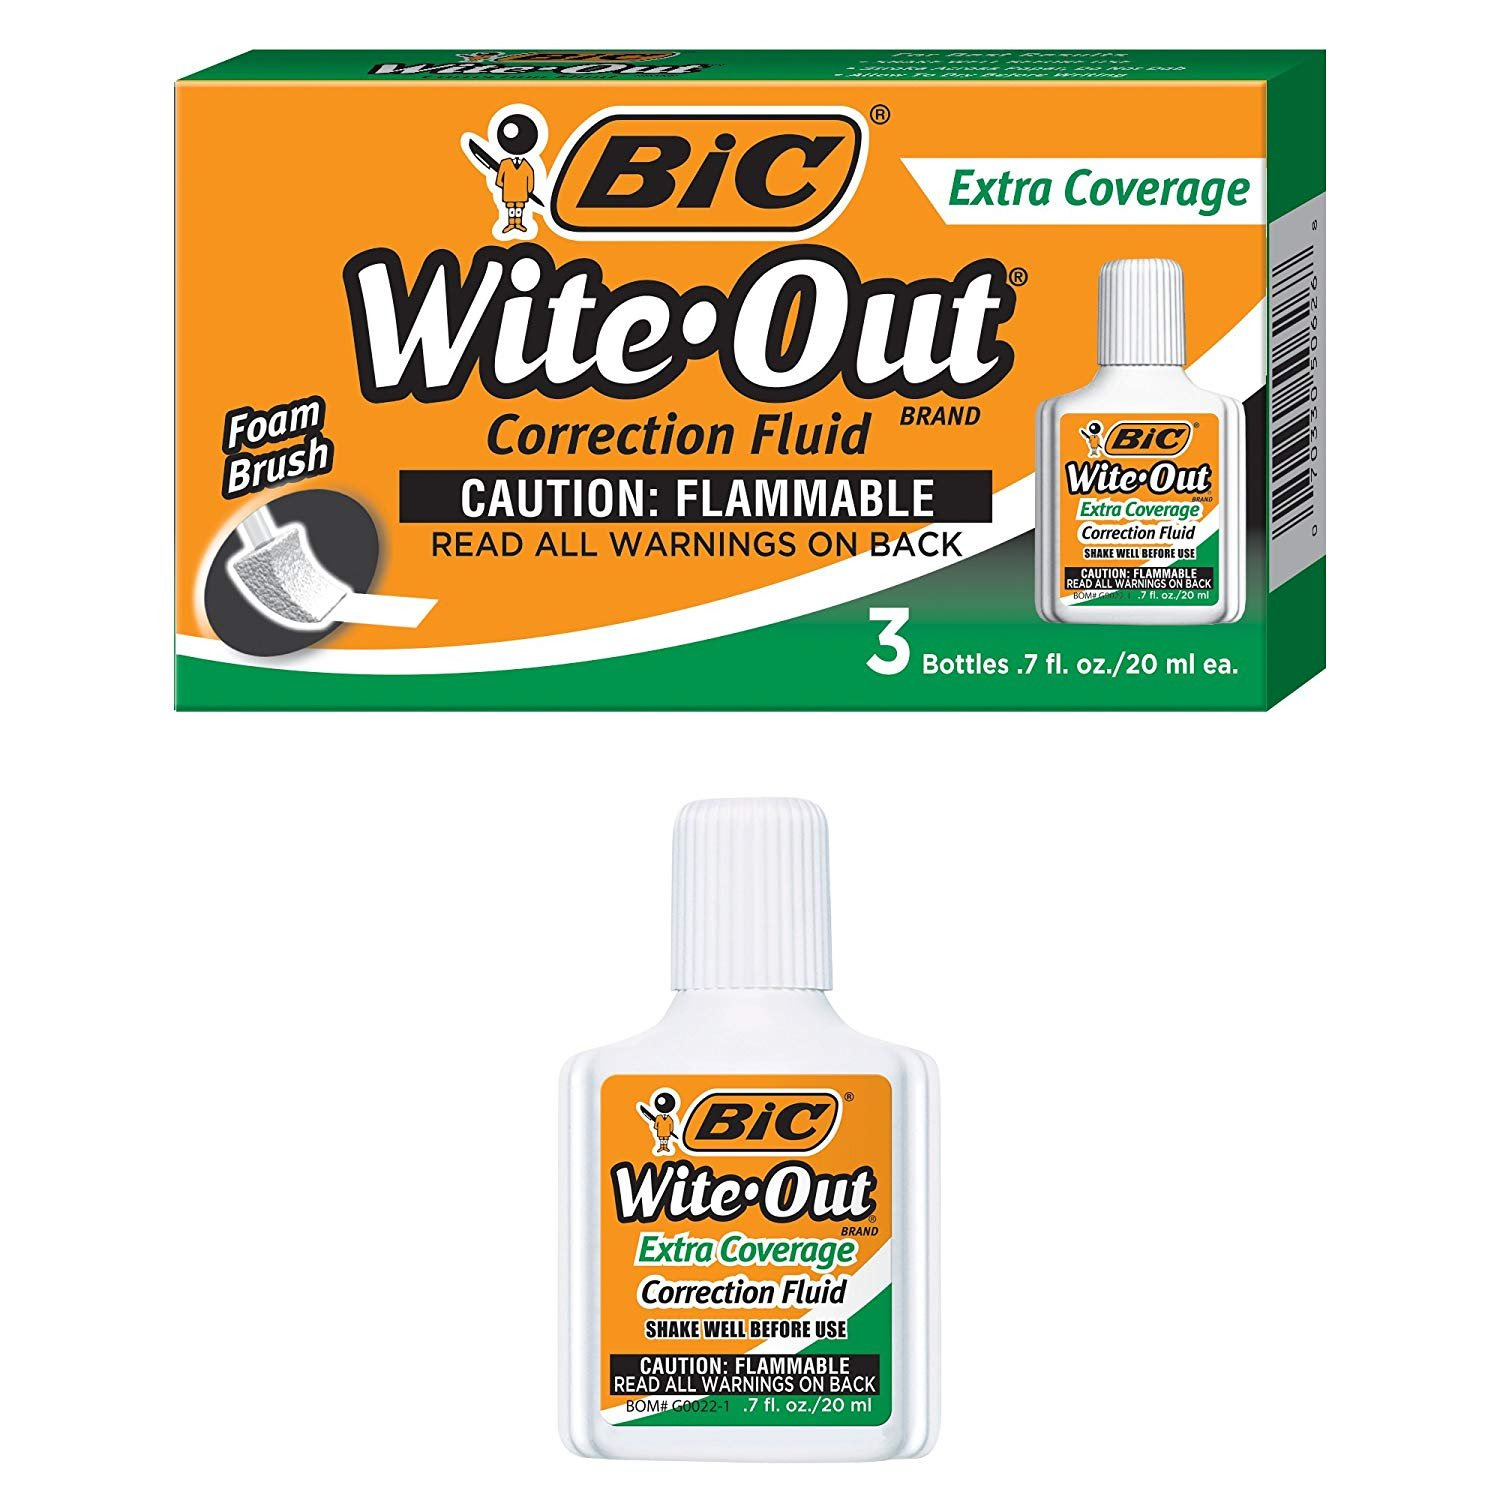 BIC Wite-Out Brand Extra Coverage Correction Fluid, 20 ml, White, 3-Count, 6 Boxes